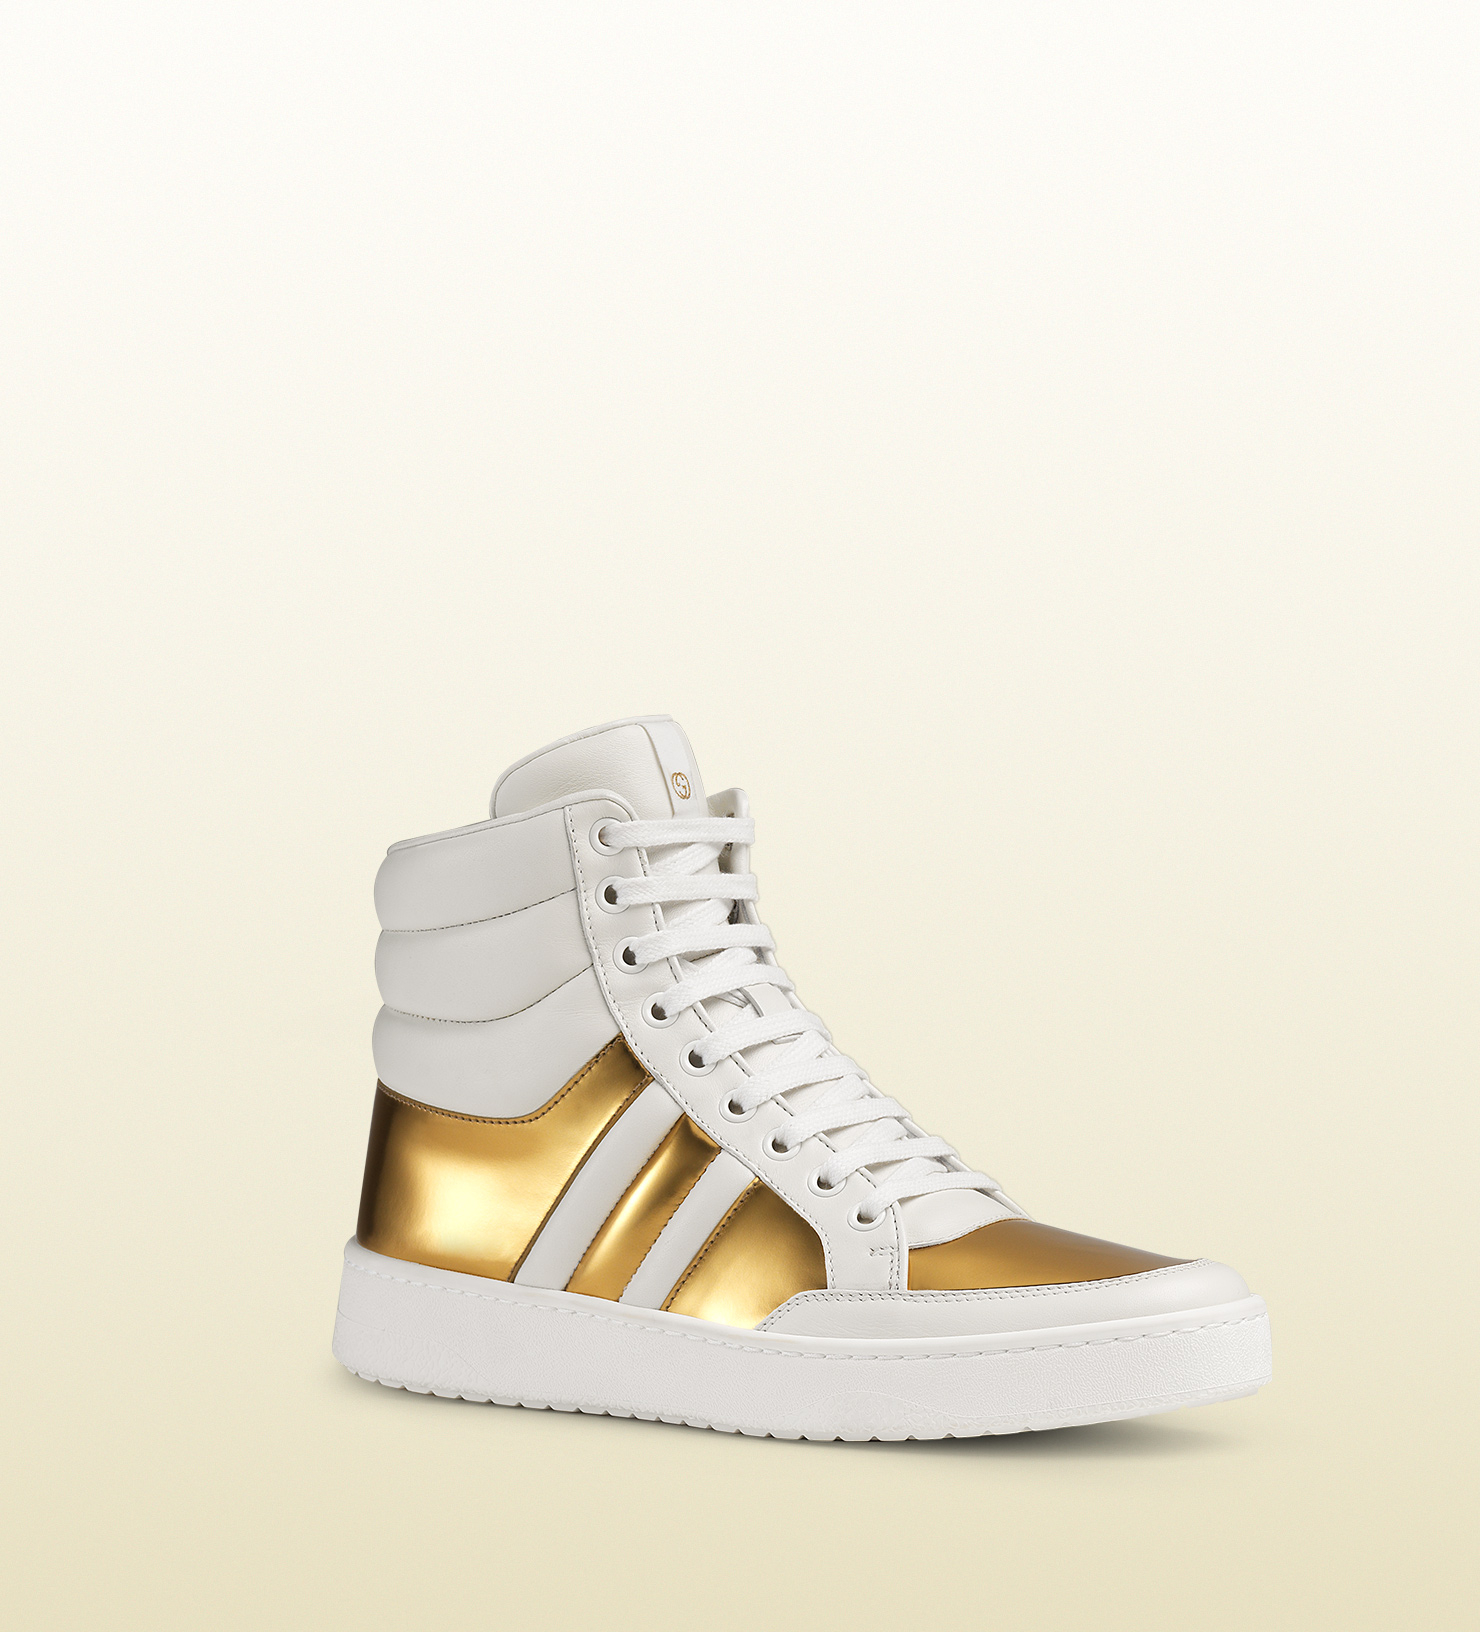 412b271ff Lyst - Gucci Contrast Padded Leather High-top Sneaker in Metallic ...